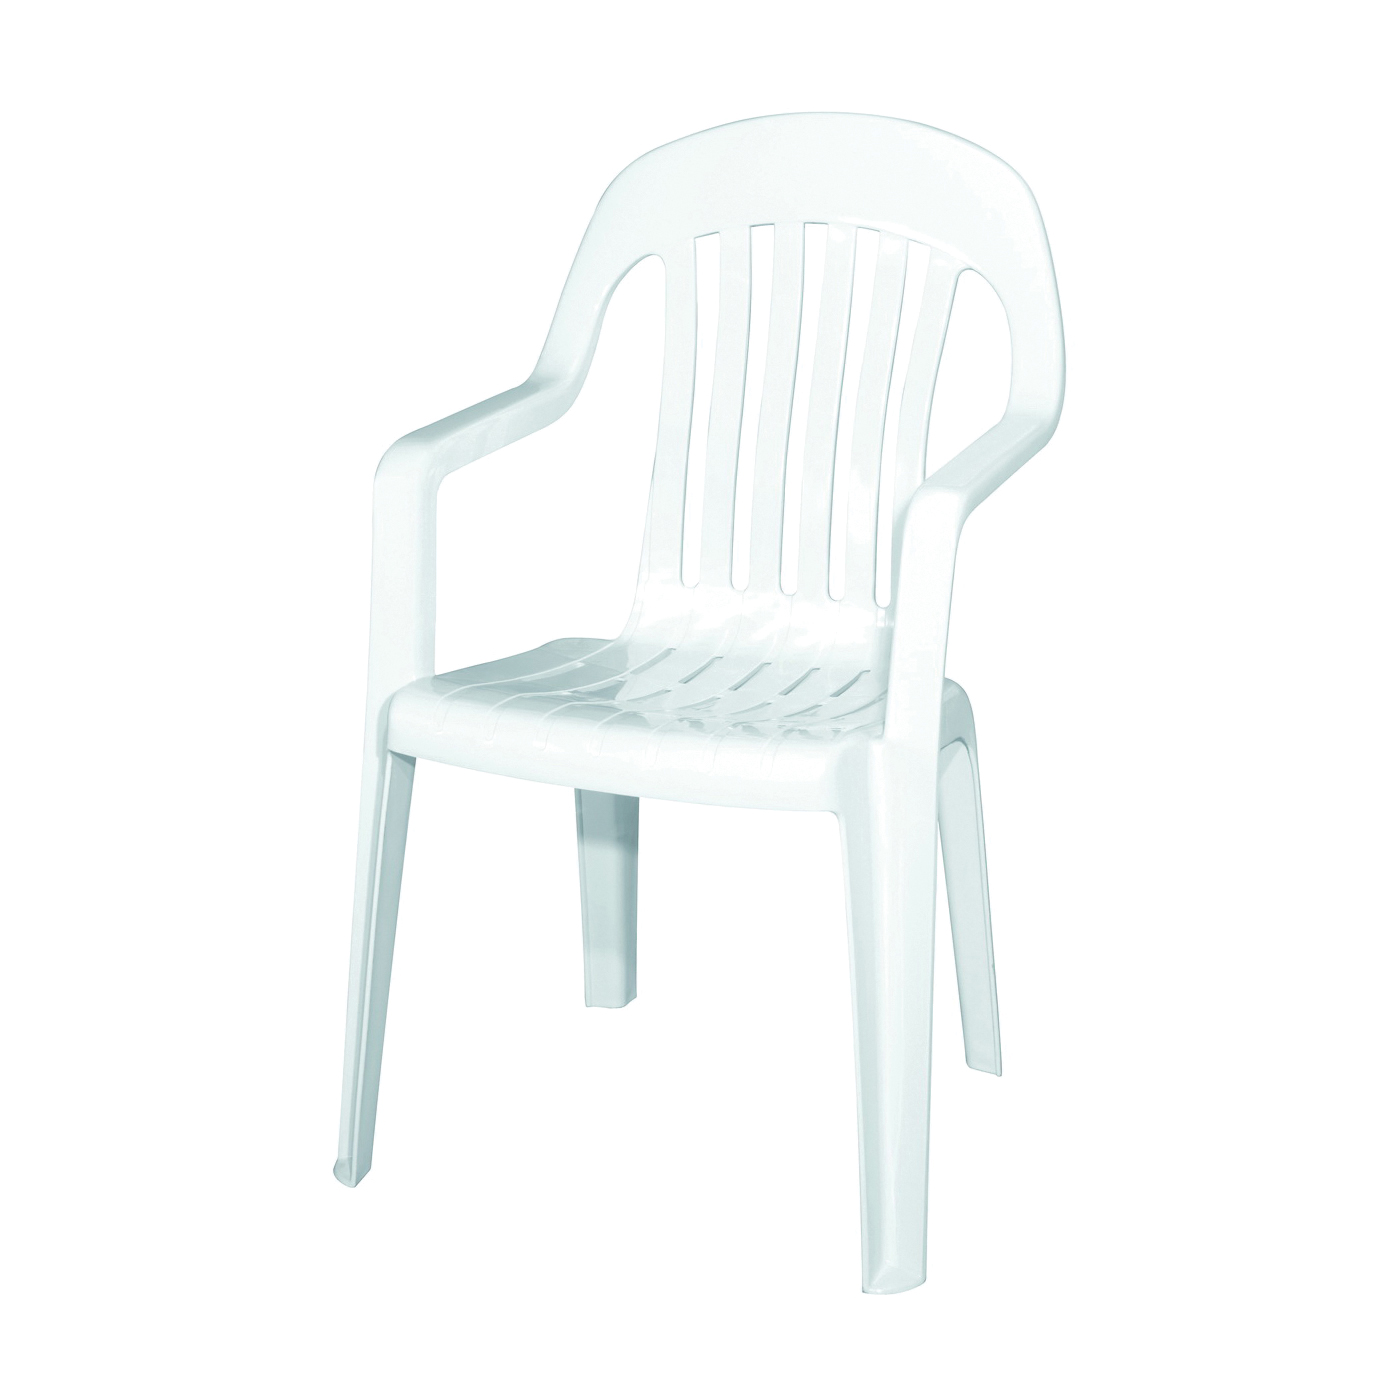 Picture of Adams 8254-48-3700 High Back Chair, 22 in W, 23 in D, 36 in H, 250 lb Capacity, Polypropylene Frame, White Frame